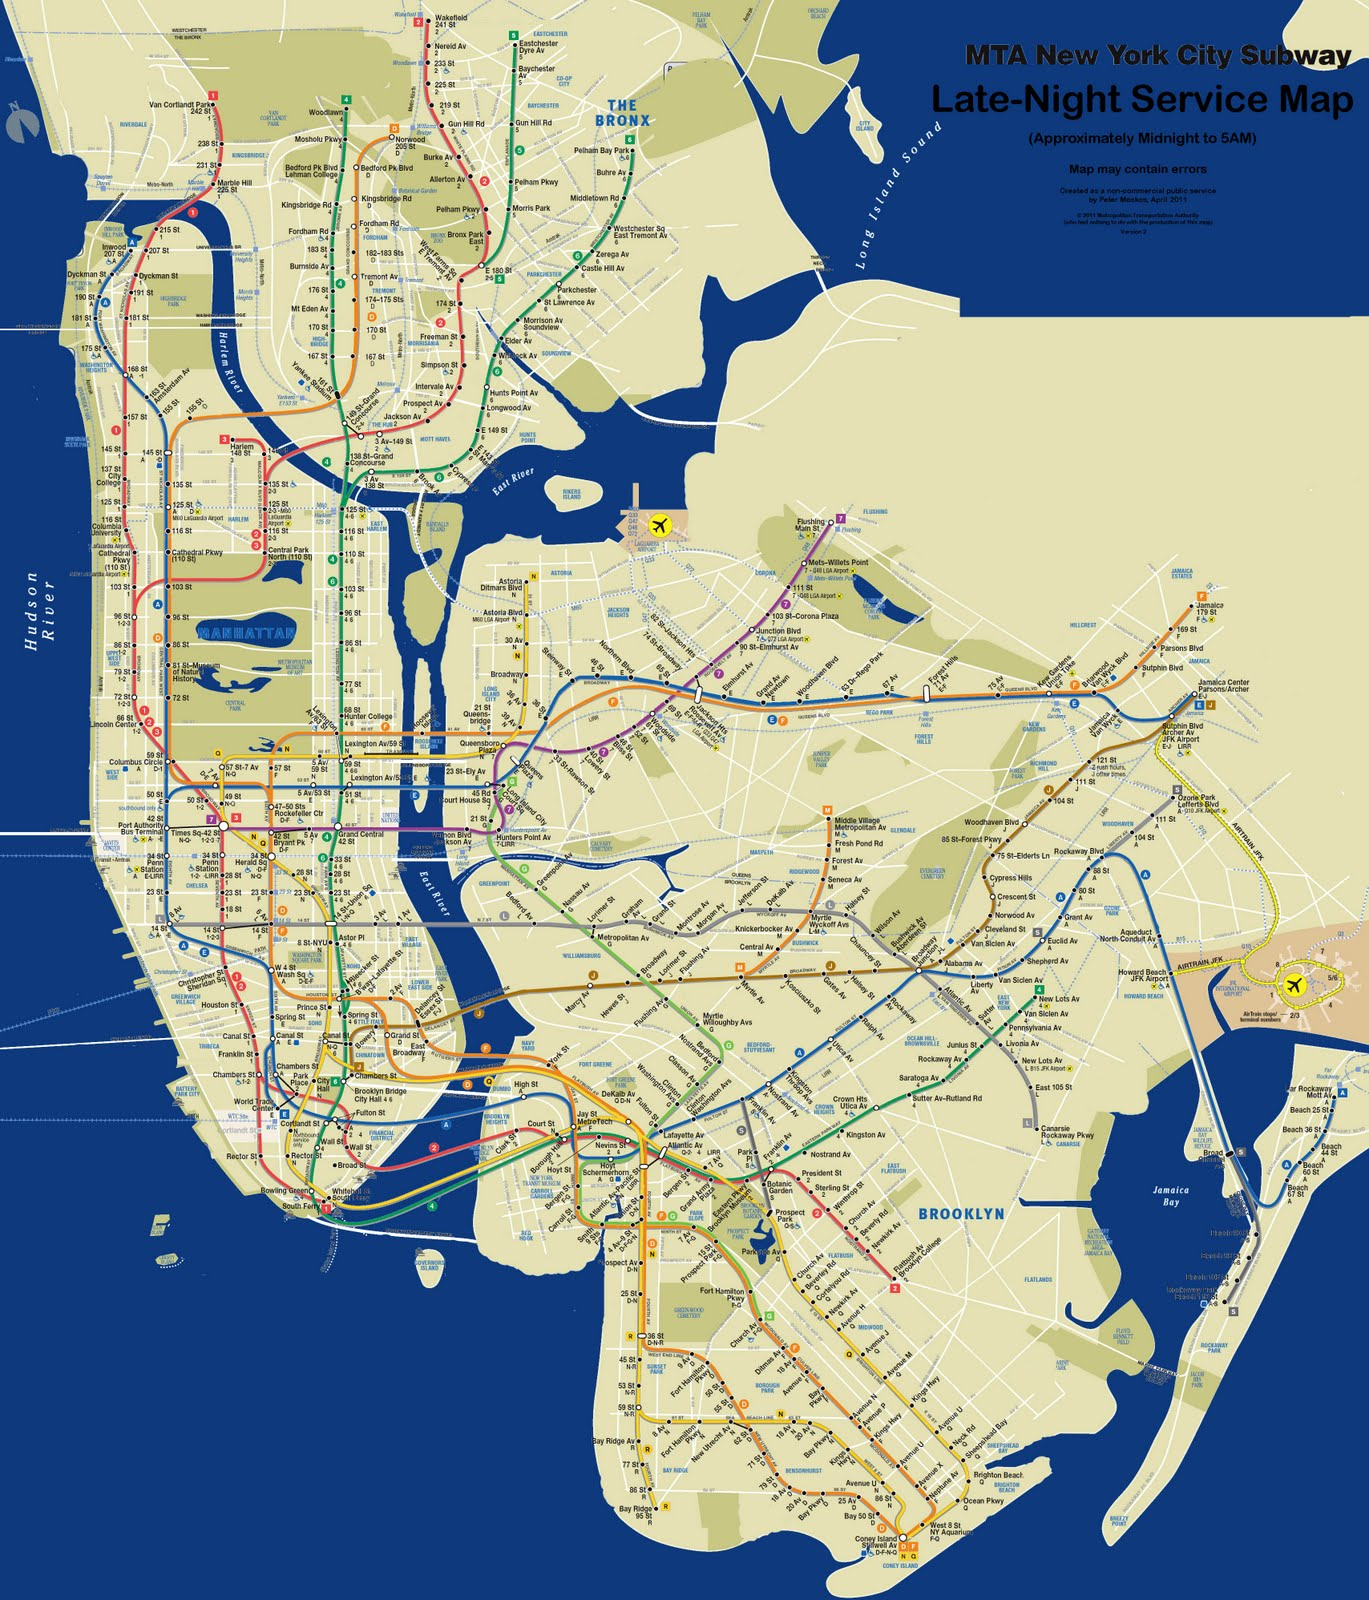 Subway Maps Archives   Page 5 of 9   Second Ave  Sagas    Second Ave     An